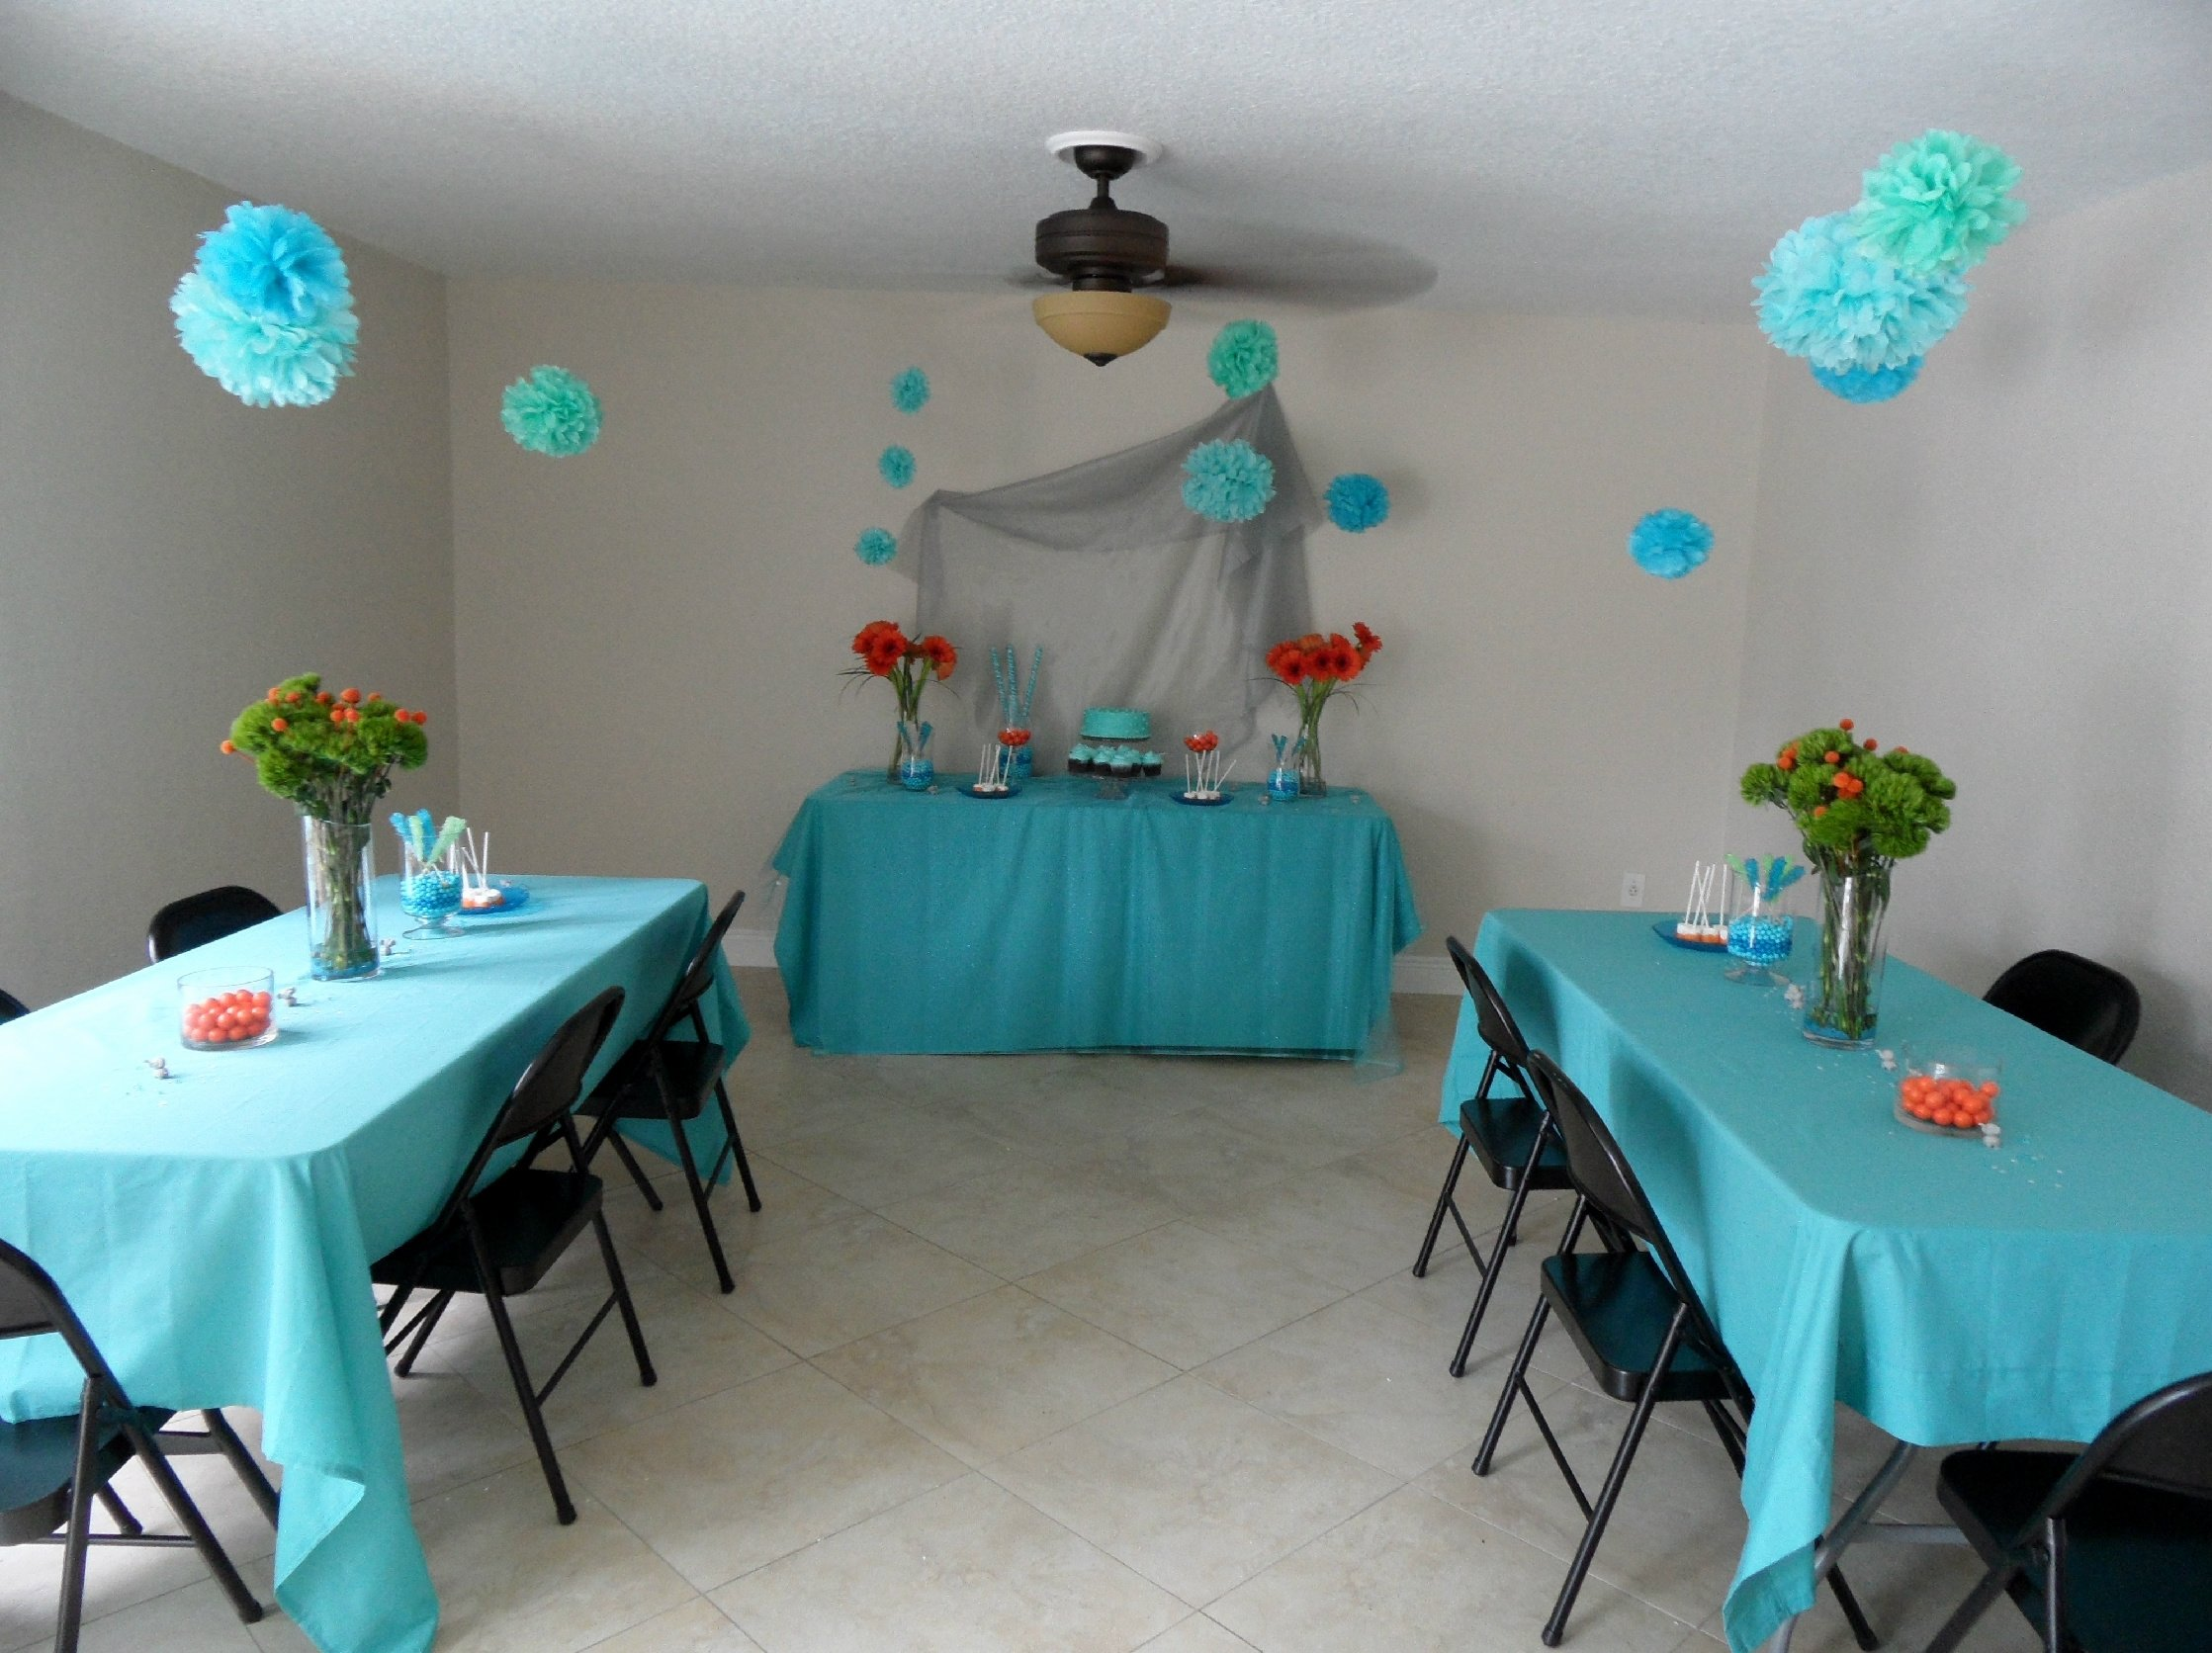 10 Trendy Baby Shower For Boys Ideas ideas baby shower decoration themes for boy simple idea girl twins 2021